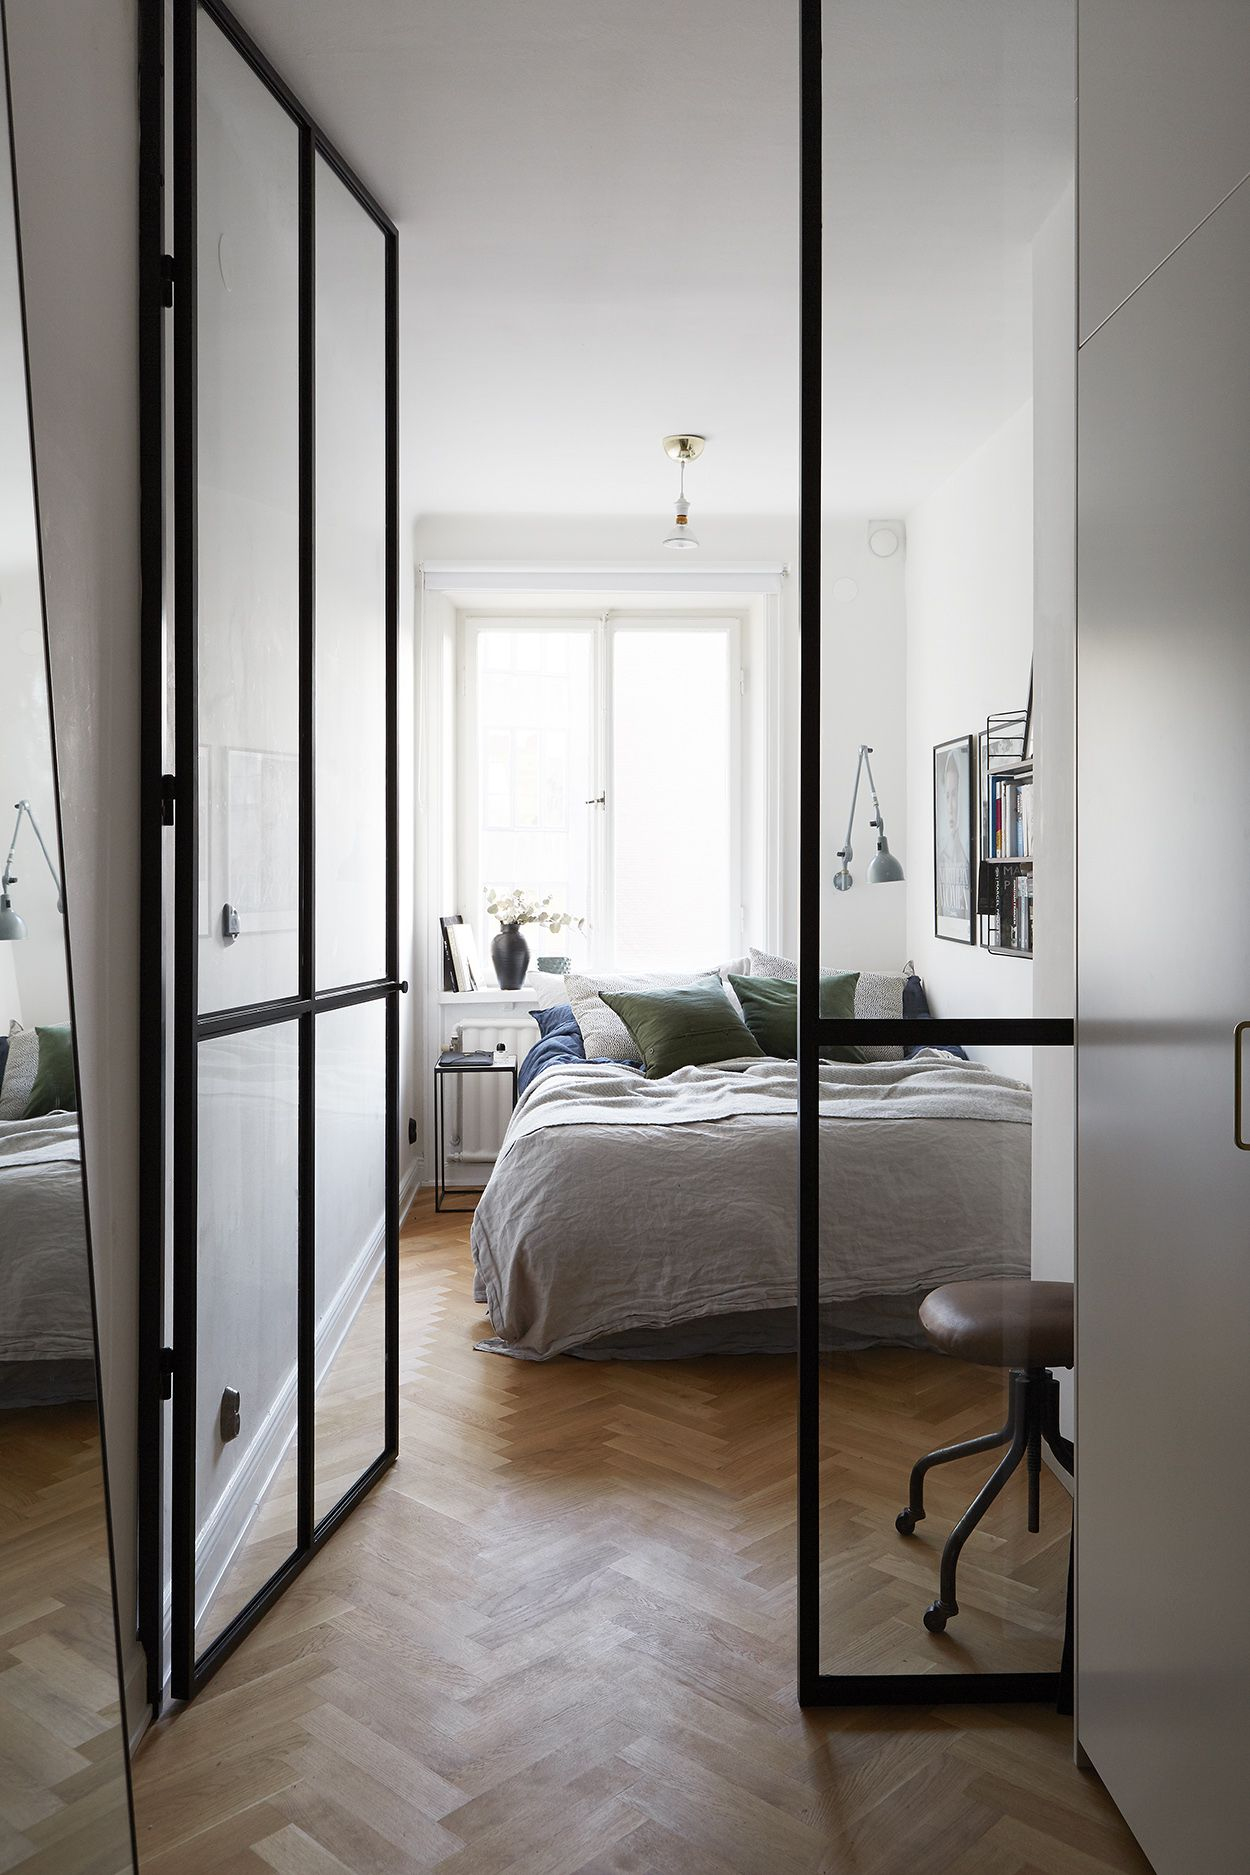 Home Partitions Gravity Home  Home Ideas  Pinterest  Scandinavian Interior